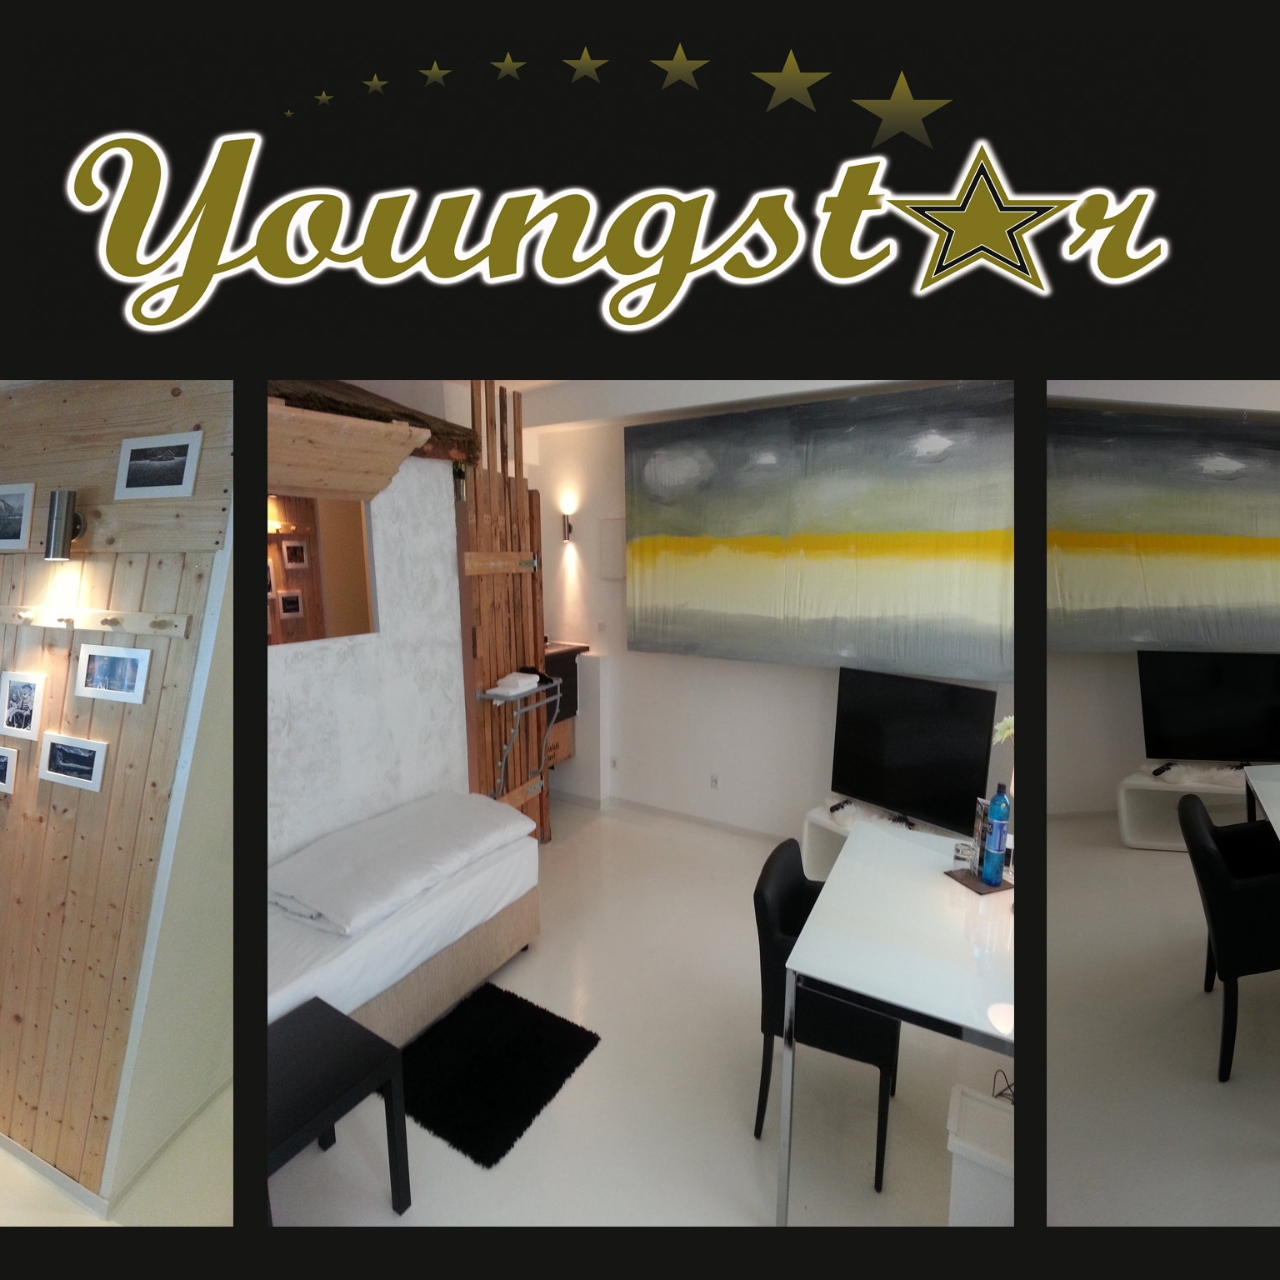 Youngstar Designhotel Baden Wurttemberg At Hrs With Free Services